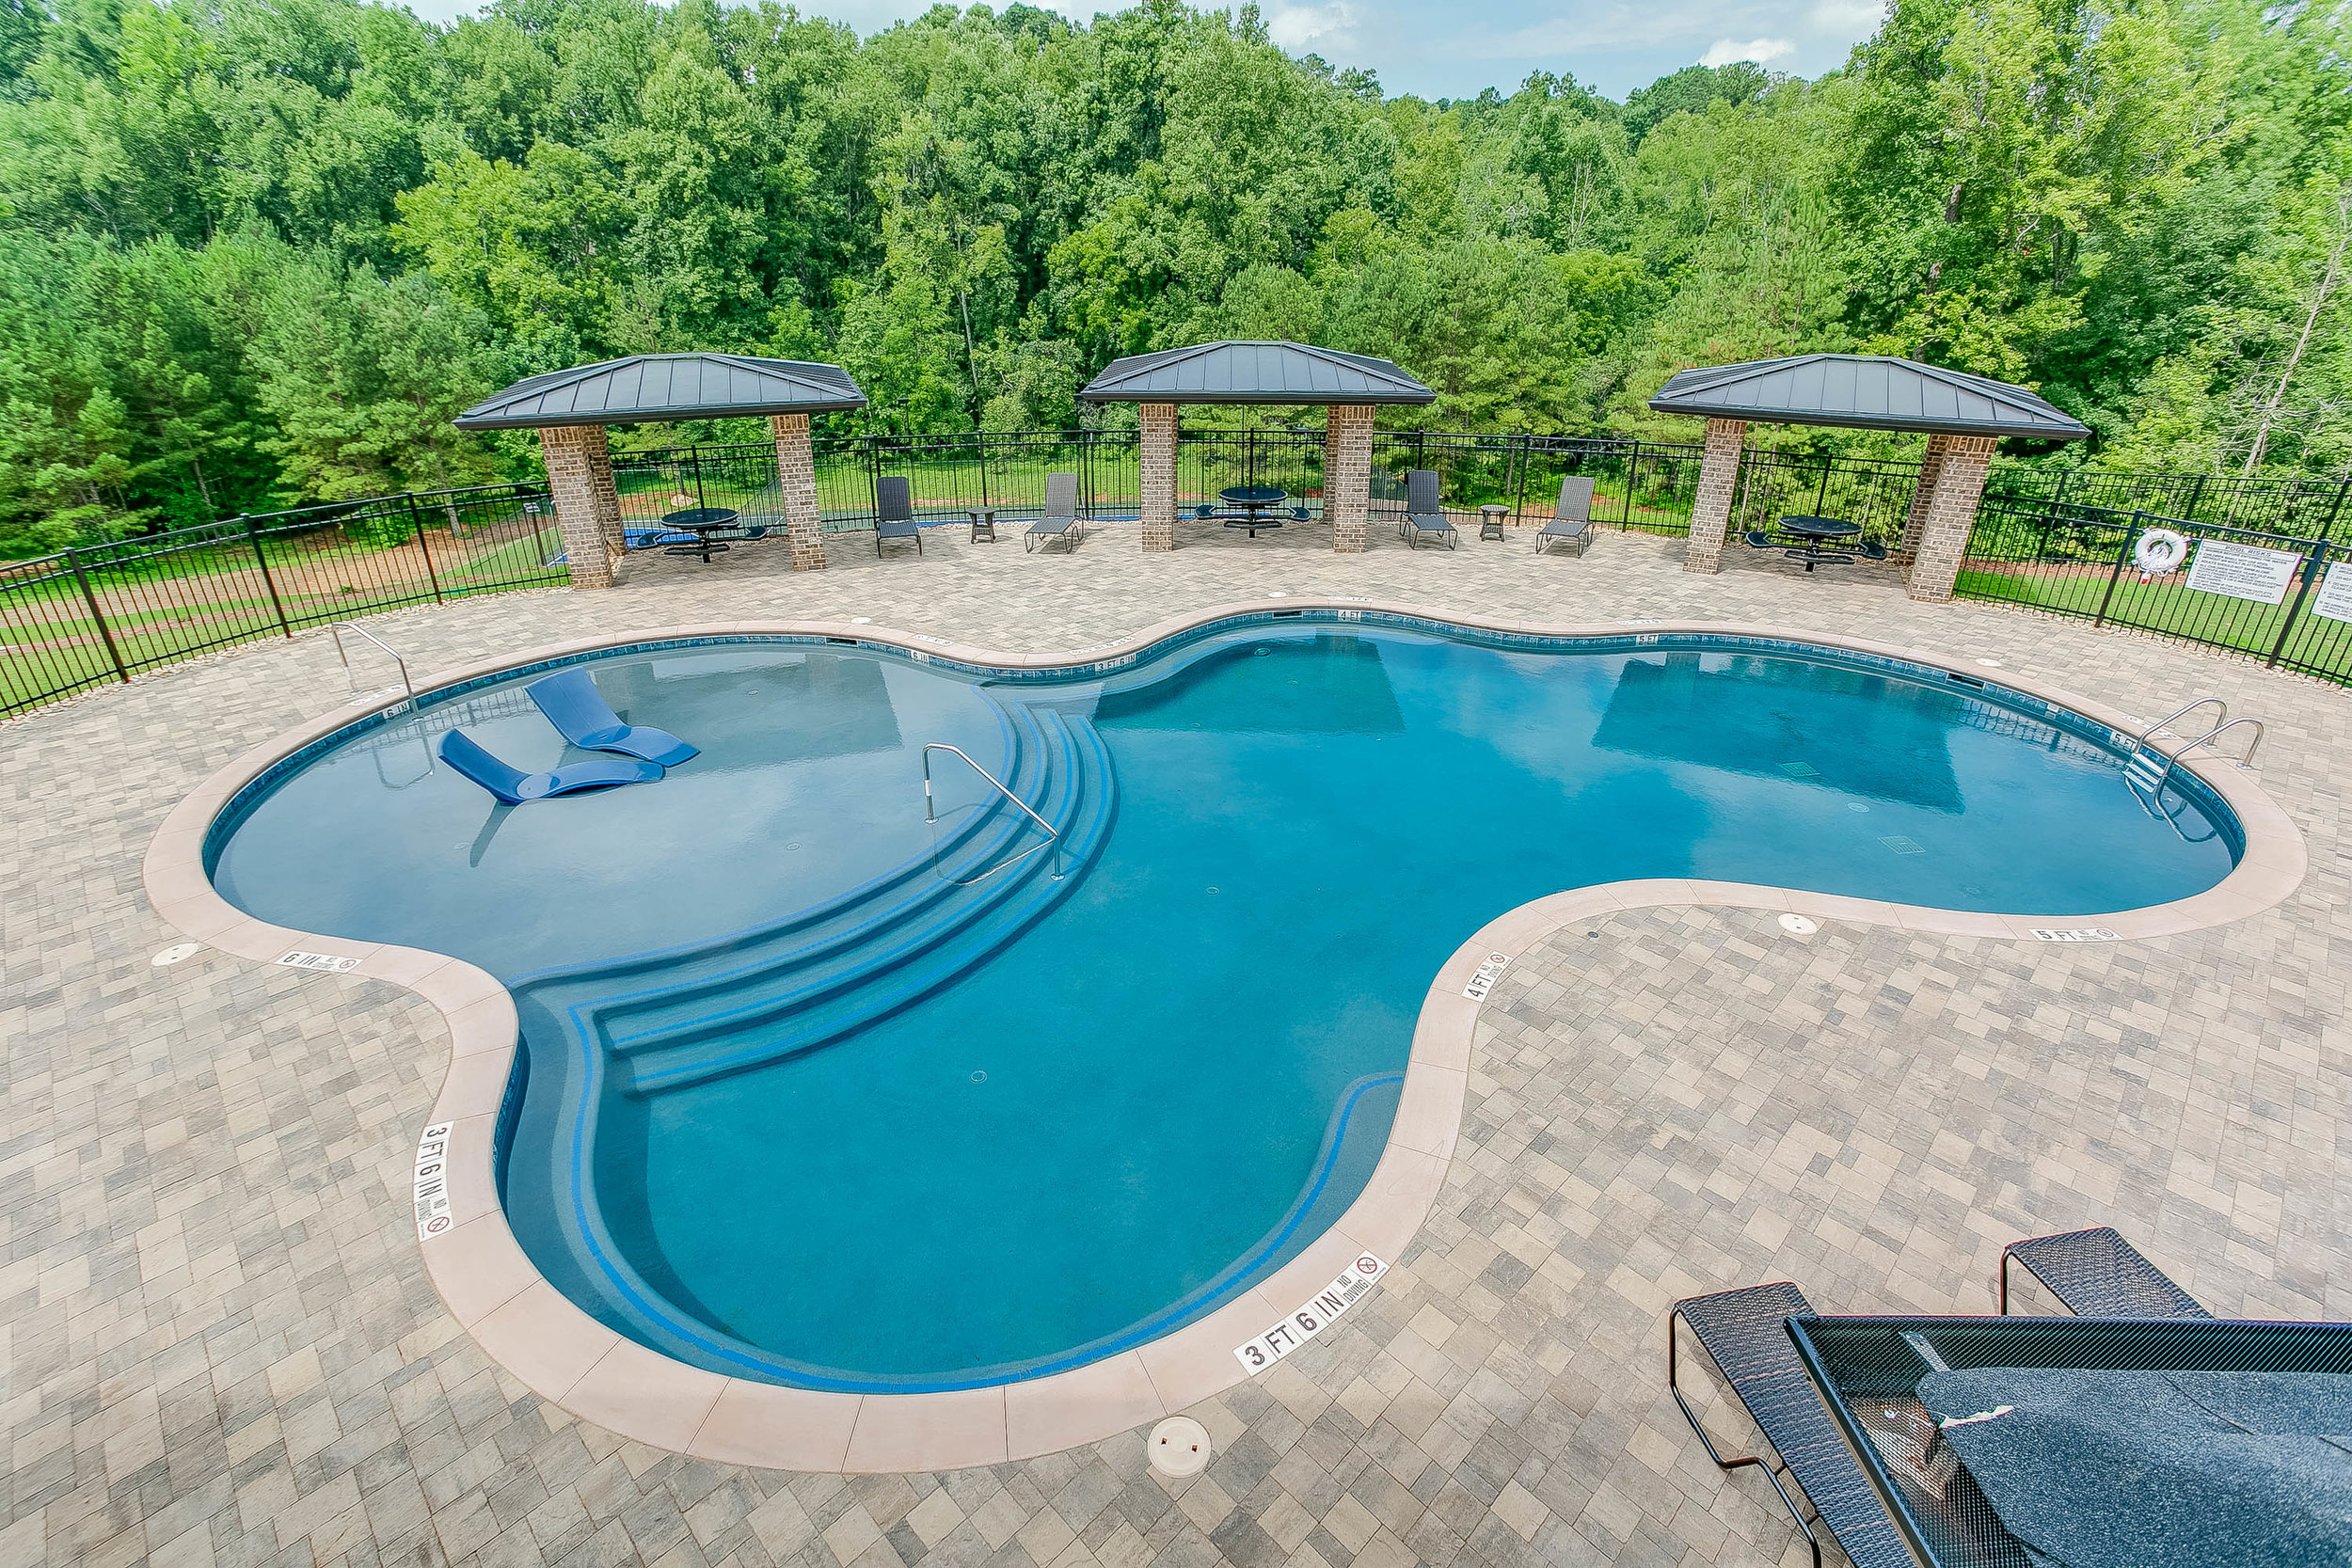 16_Scenic Falls Amenities and Drone.jpg